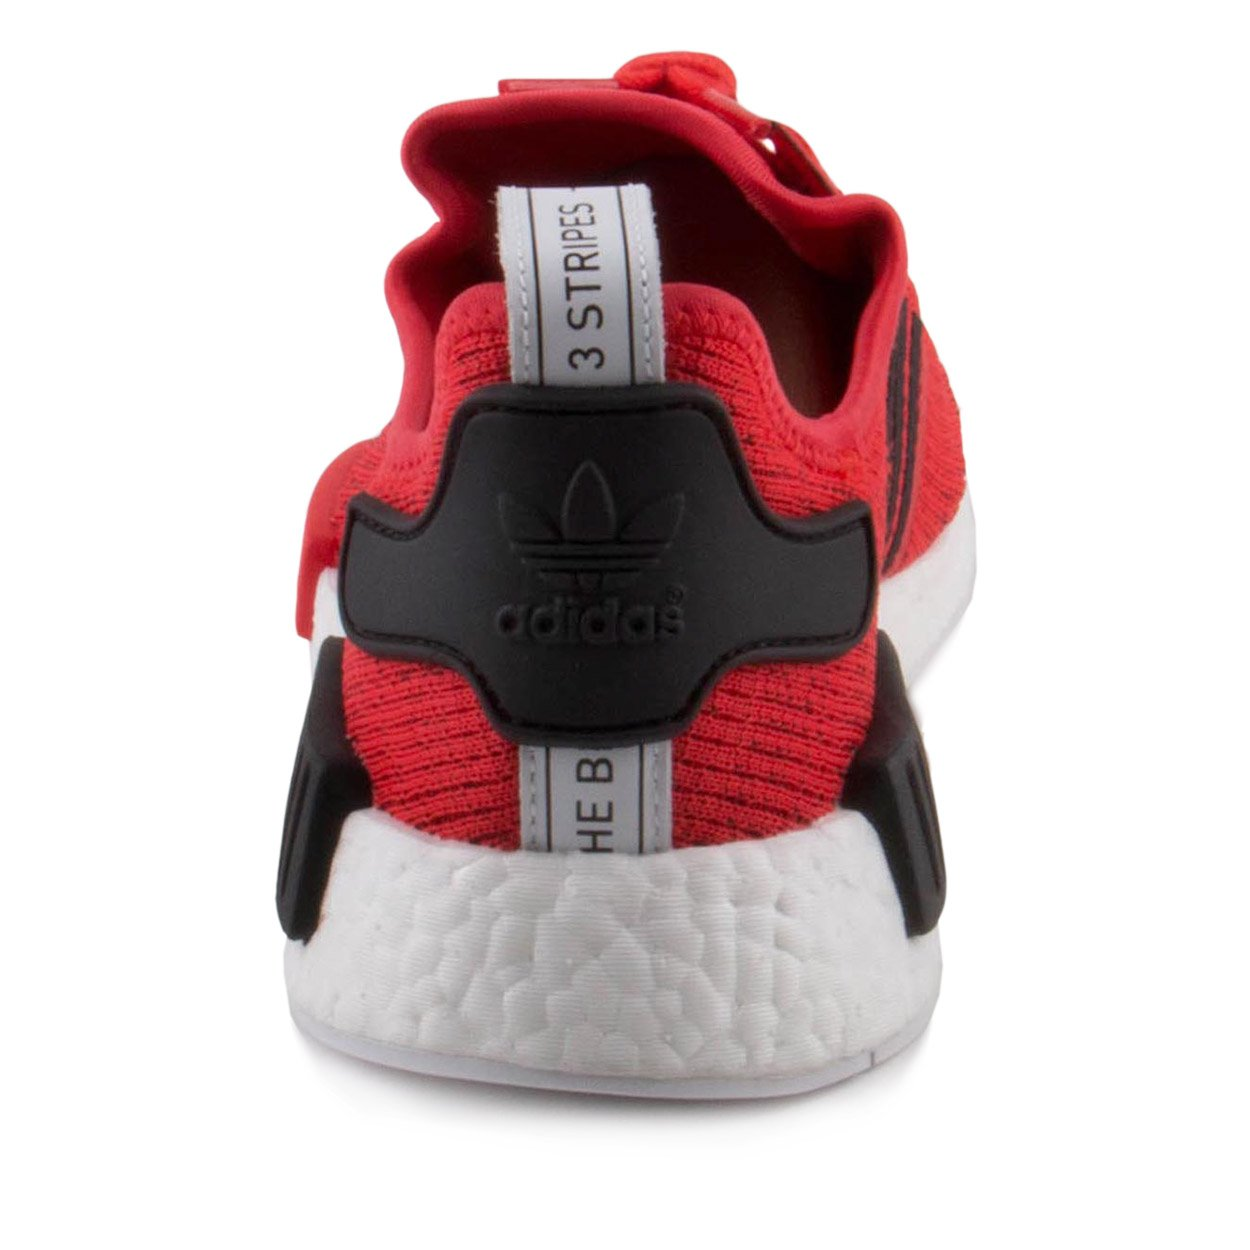 sports shoes 21b03 f5296 Adidas NMD_R1 - BB2885 - BB2885 < Running < Clothing, Shoes ...